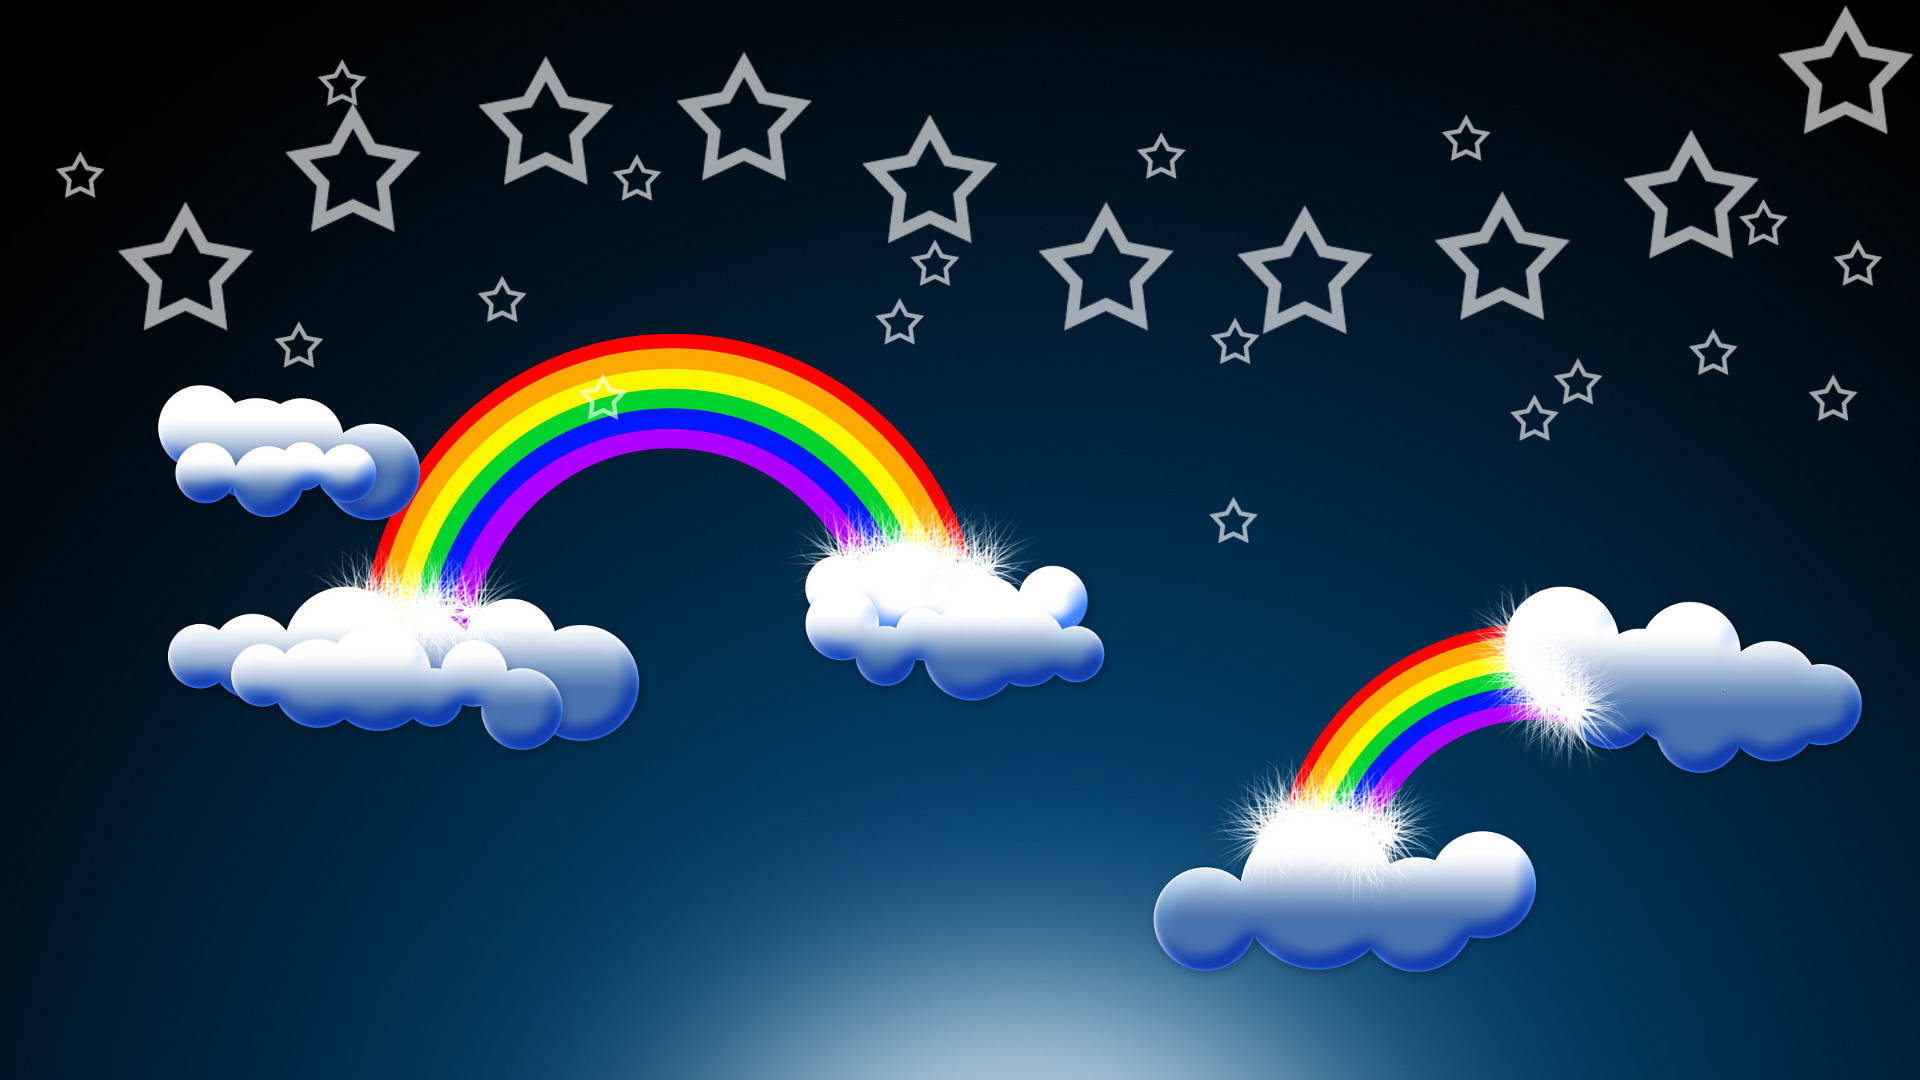 Res: 1920x1080,  Theme Bin» Blog Archive » Epic Rainbow and Clouds HD Wallpaper